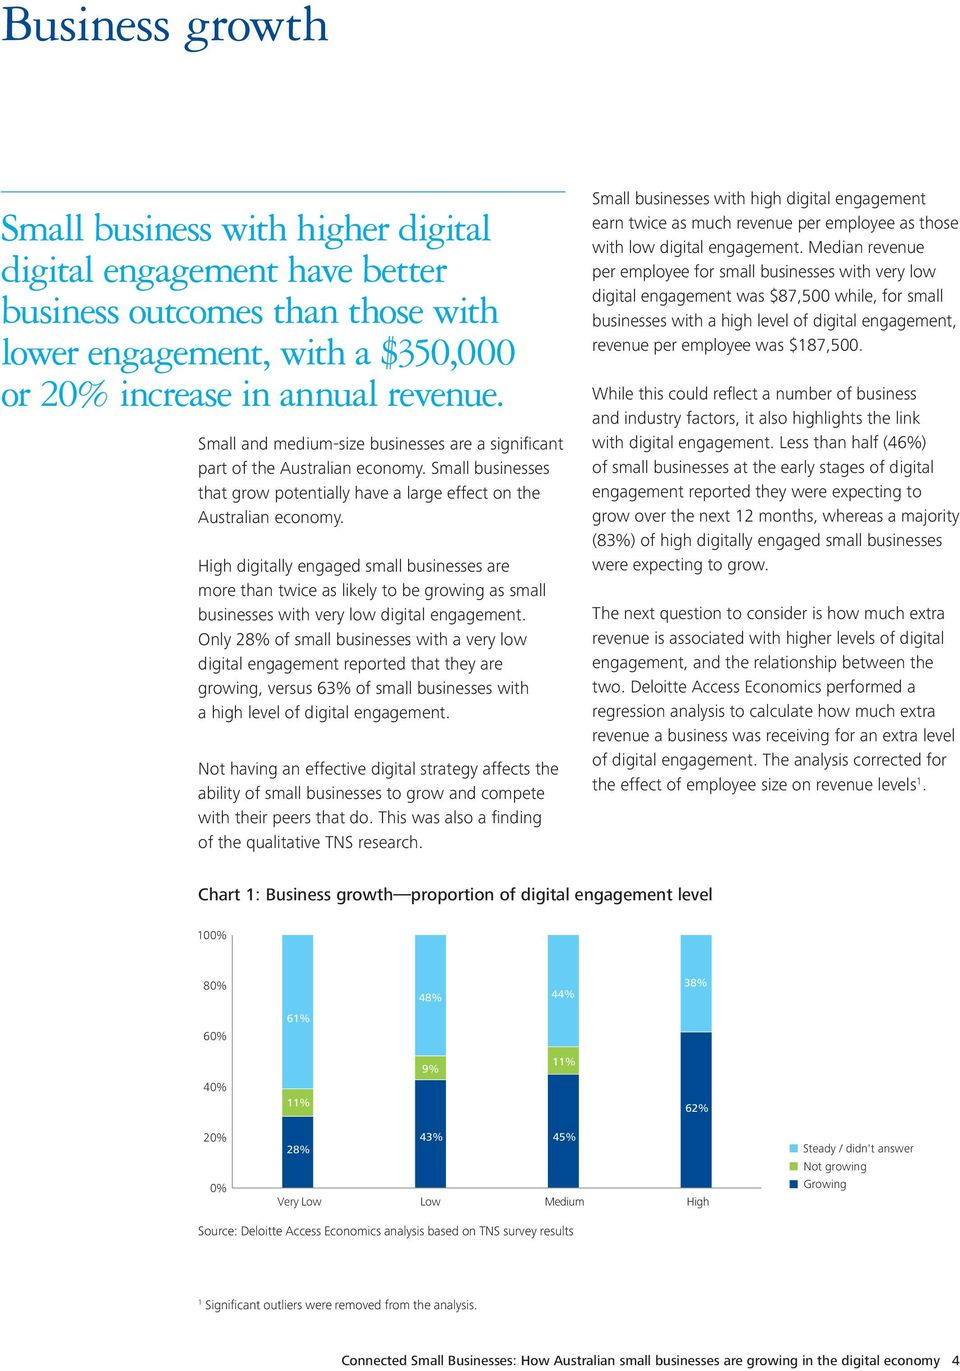 High digitally engaged small businesses are more than twice as likely to be growing as small businesses with very low digital engagement.